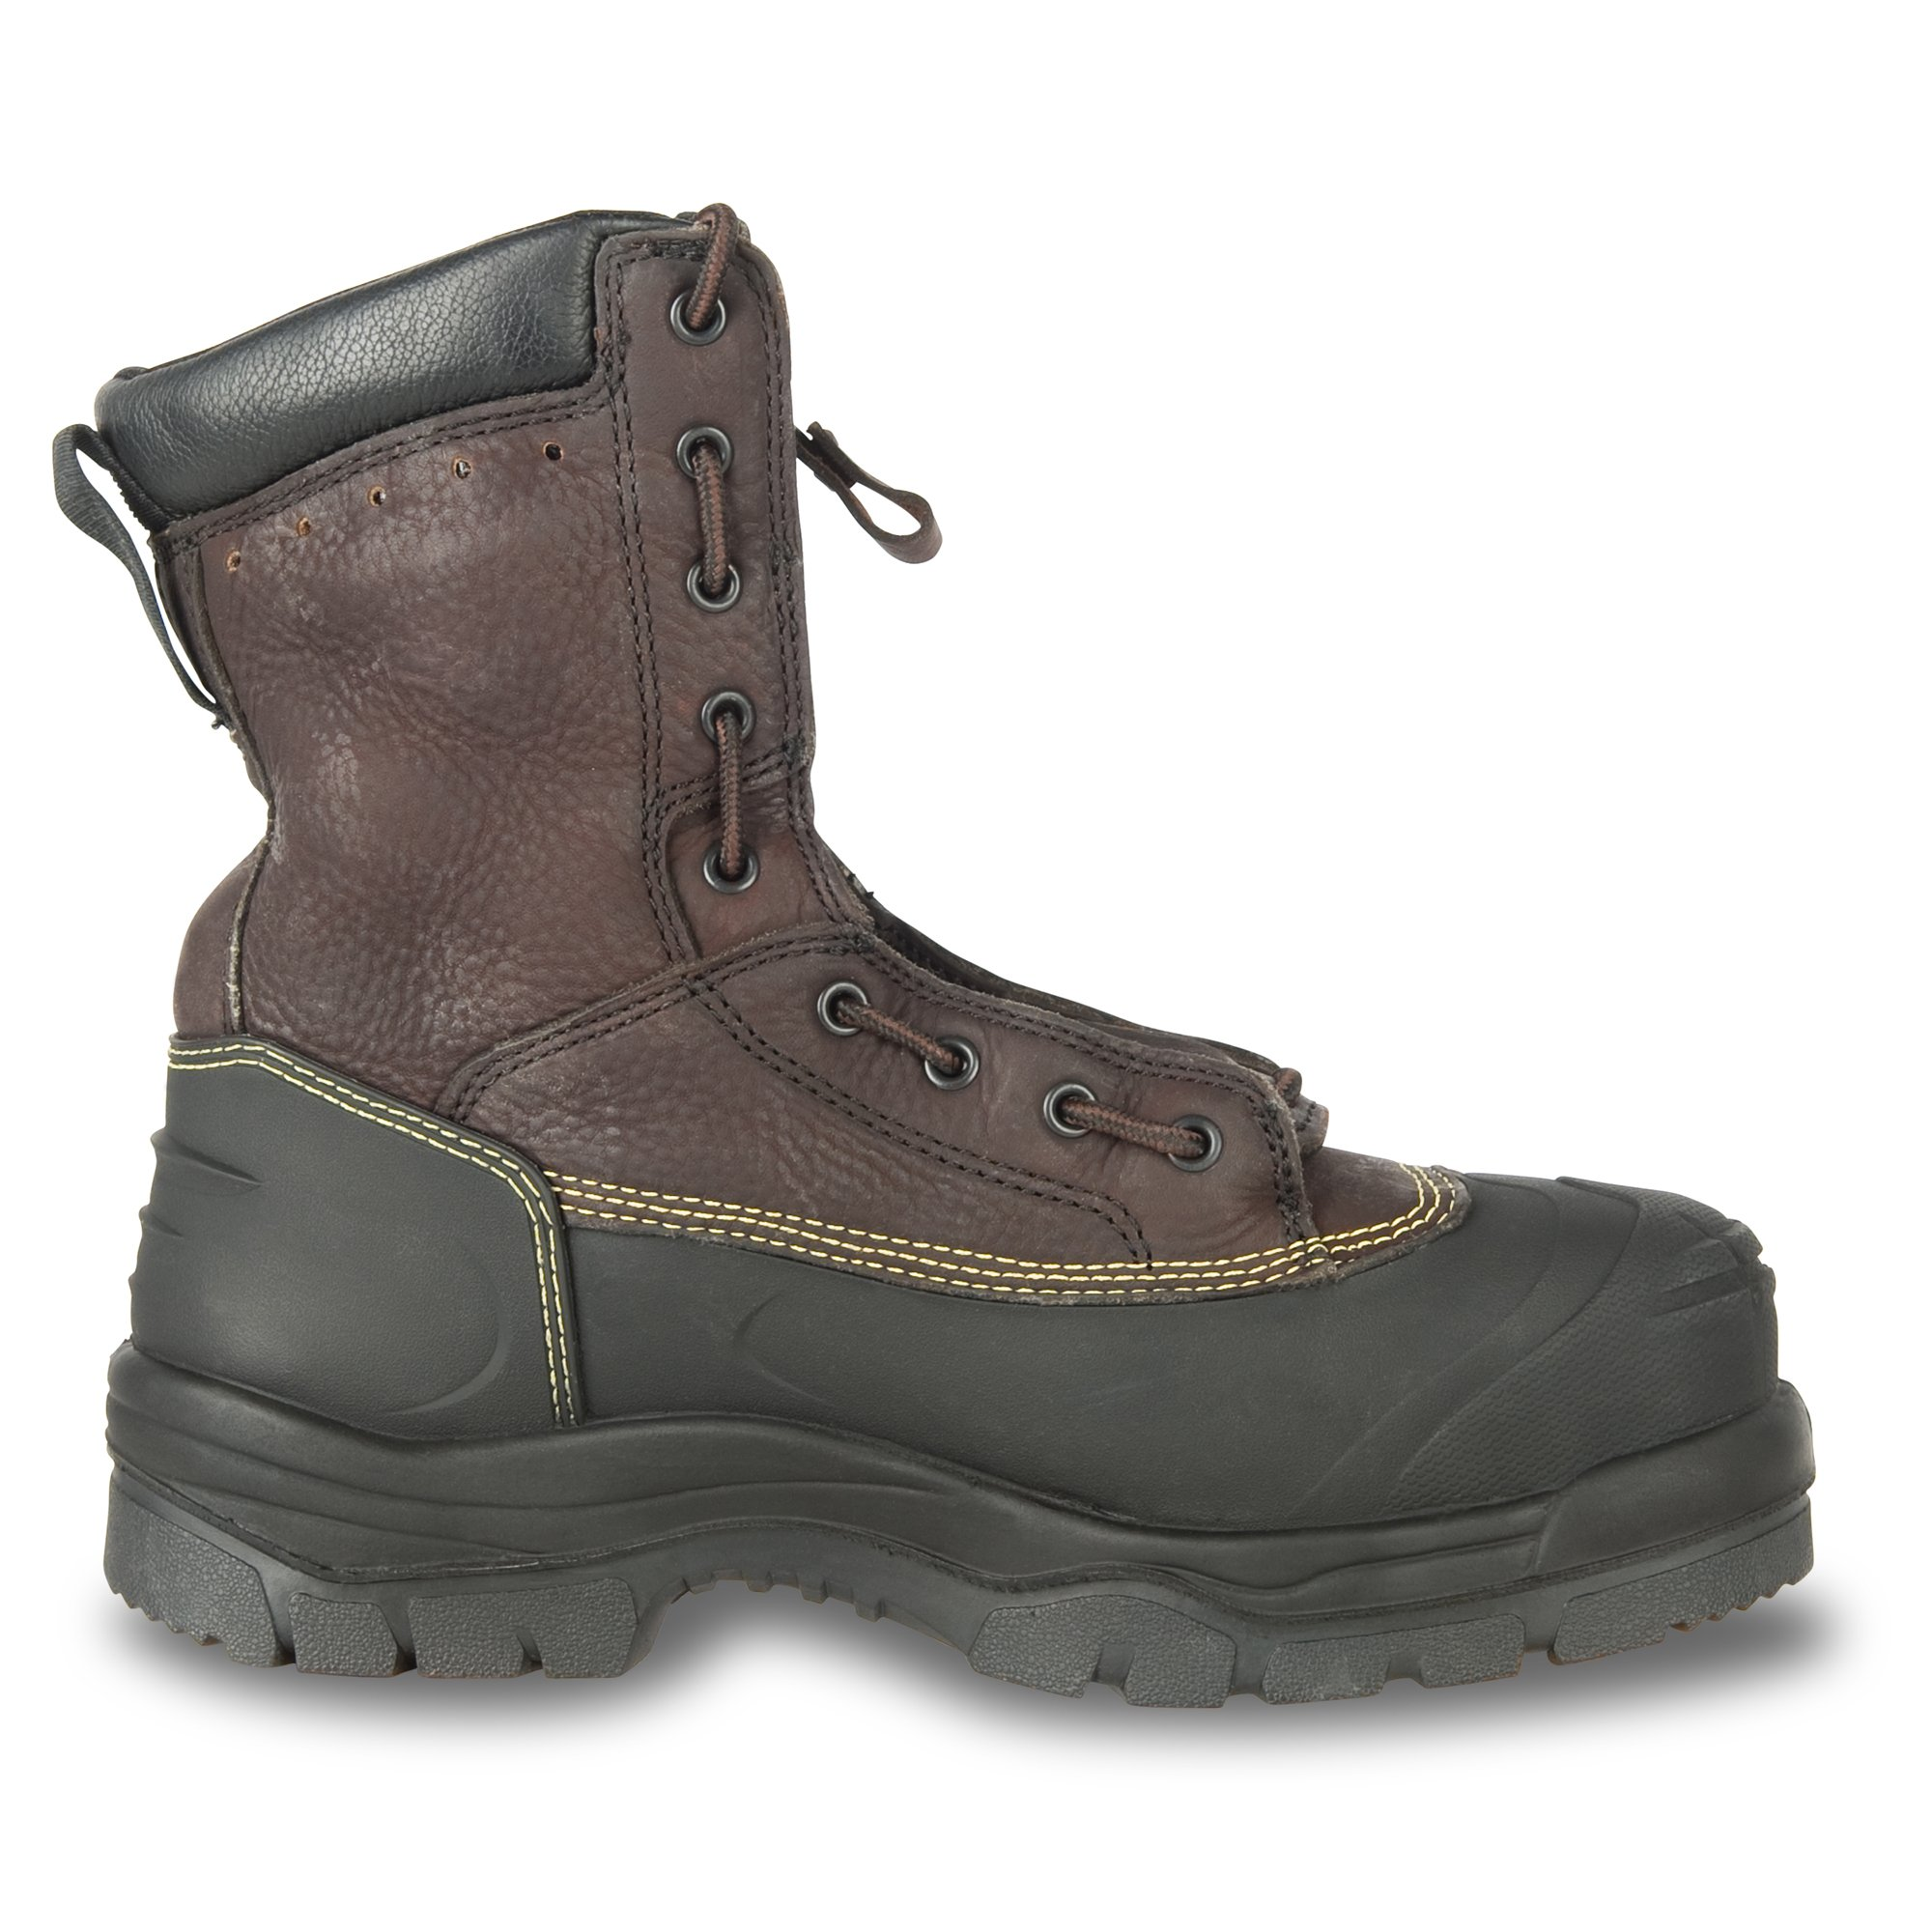 Oliver 65 Series 8'' Leather Chemical-Resistant Steel Toe Lace-In Zipper Men's Metatarsal Boots, Brown (65392) by Honeywell (Image #6)